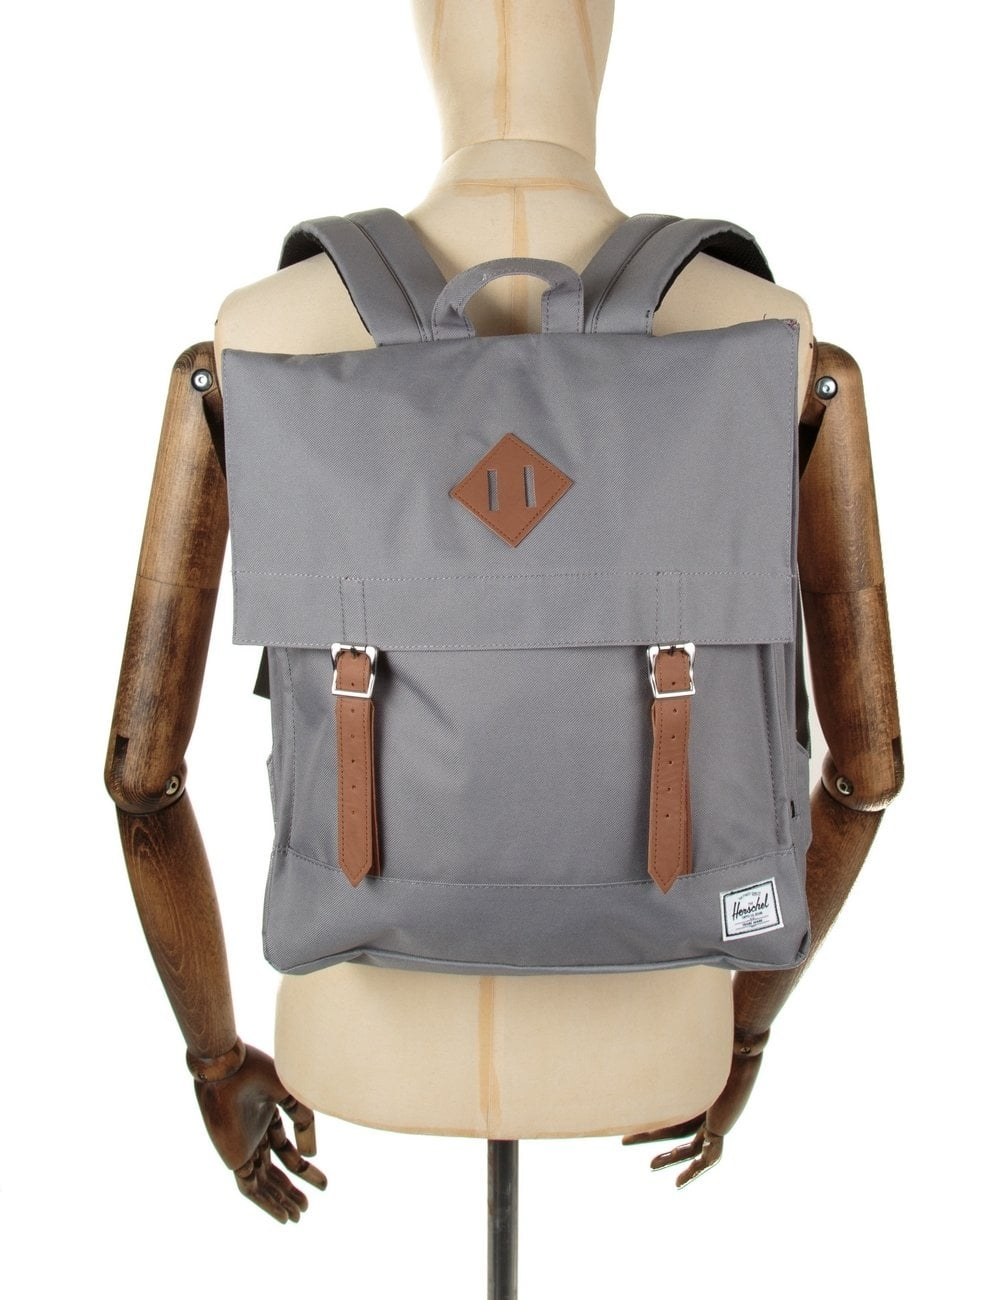 a57c8921350 Herschel Supply Co Survey Backpack - Grey Tan - Accessories from Fat ...